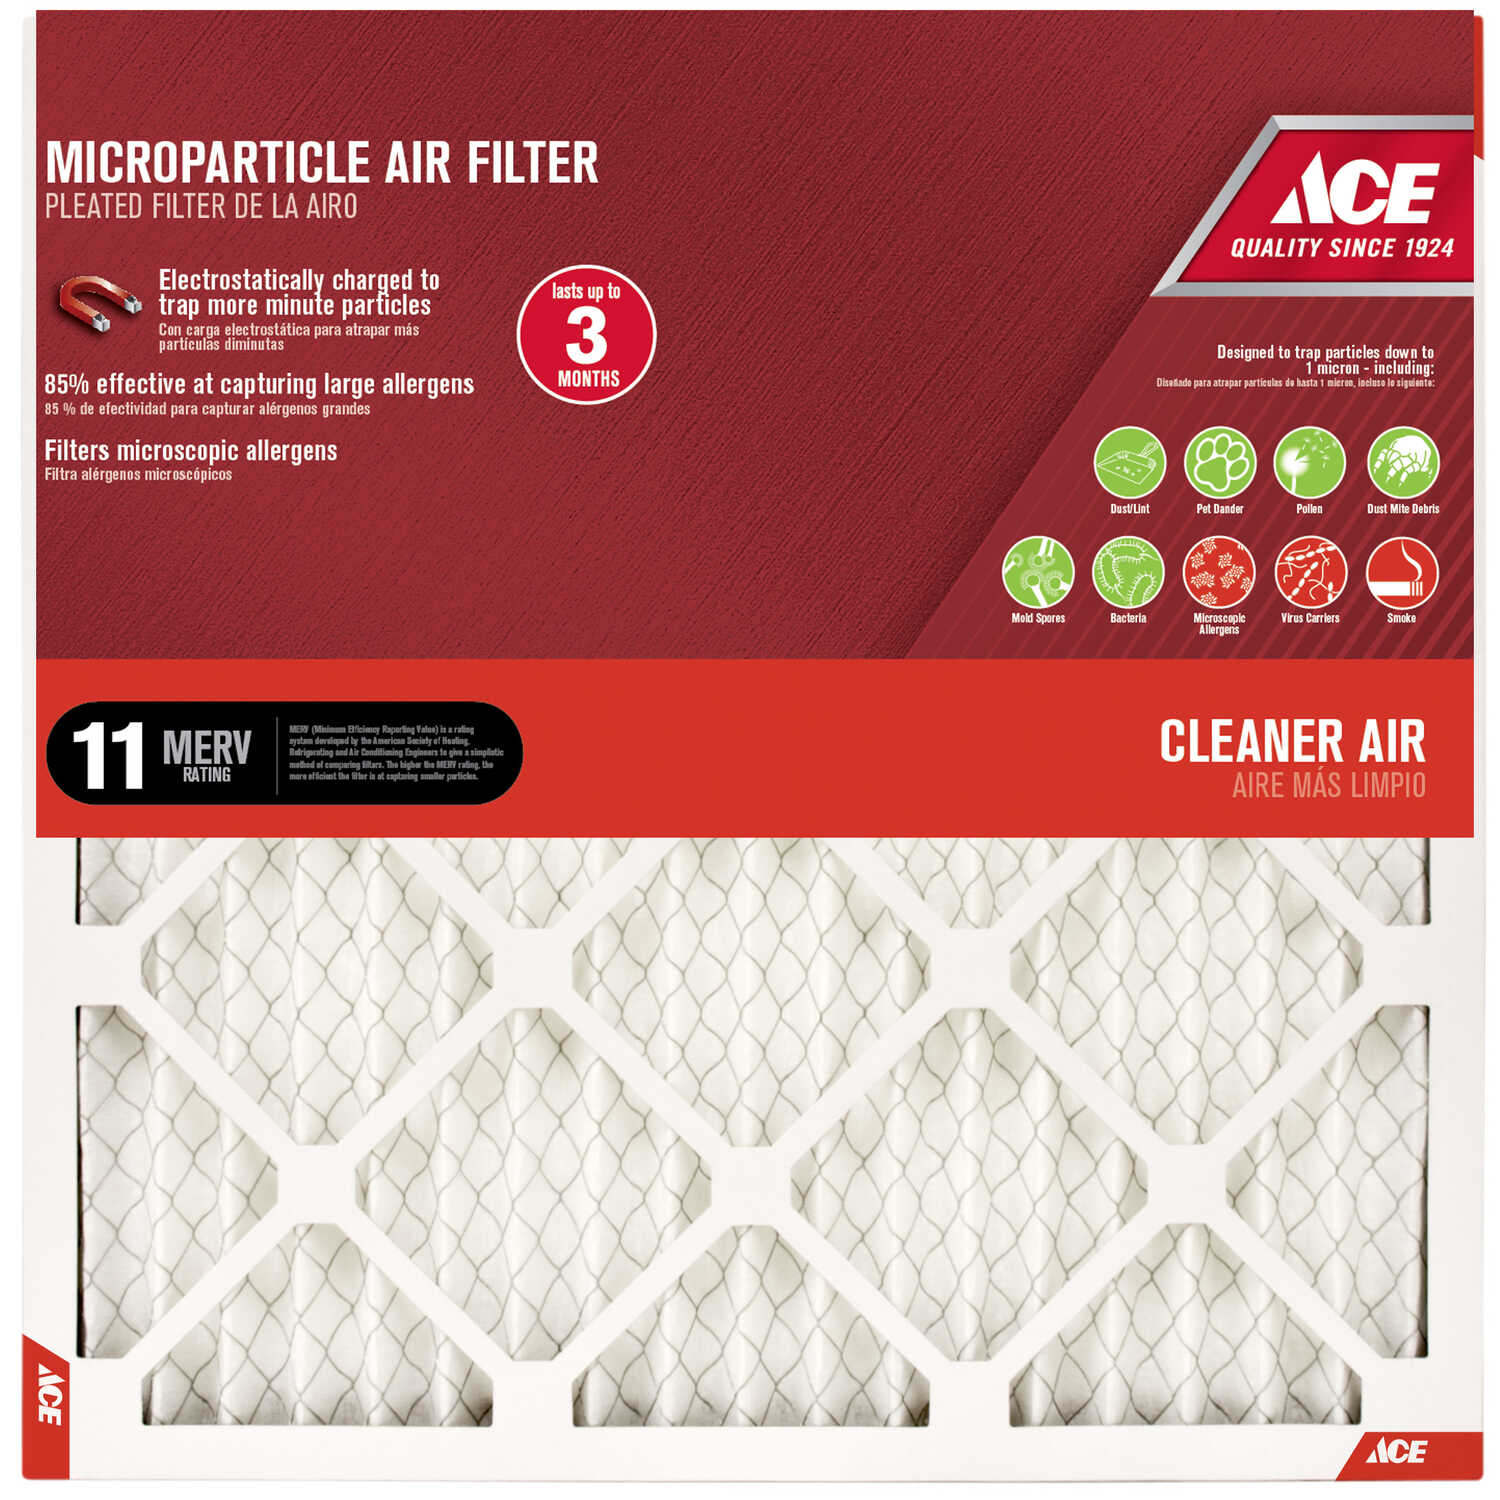 Ace  20 in. H x 12 in. W x 1 in. D Pleated  10 MERV Microparticle Air Filter